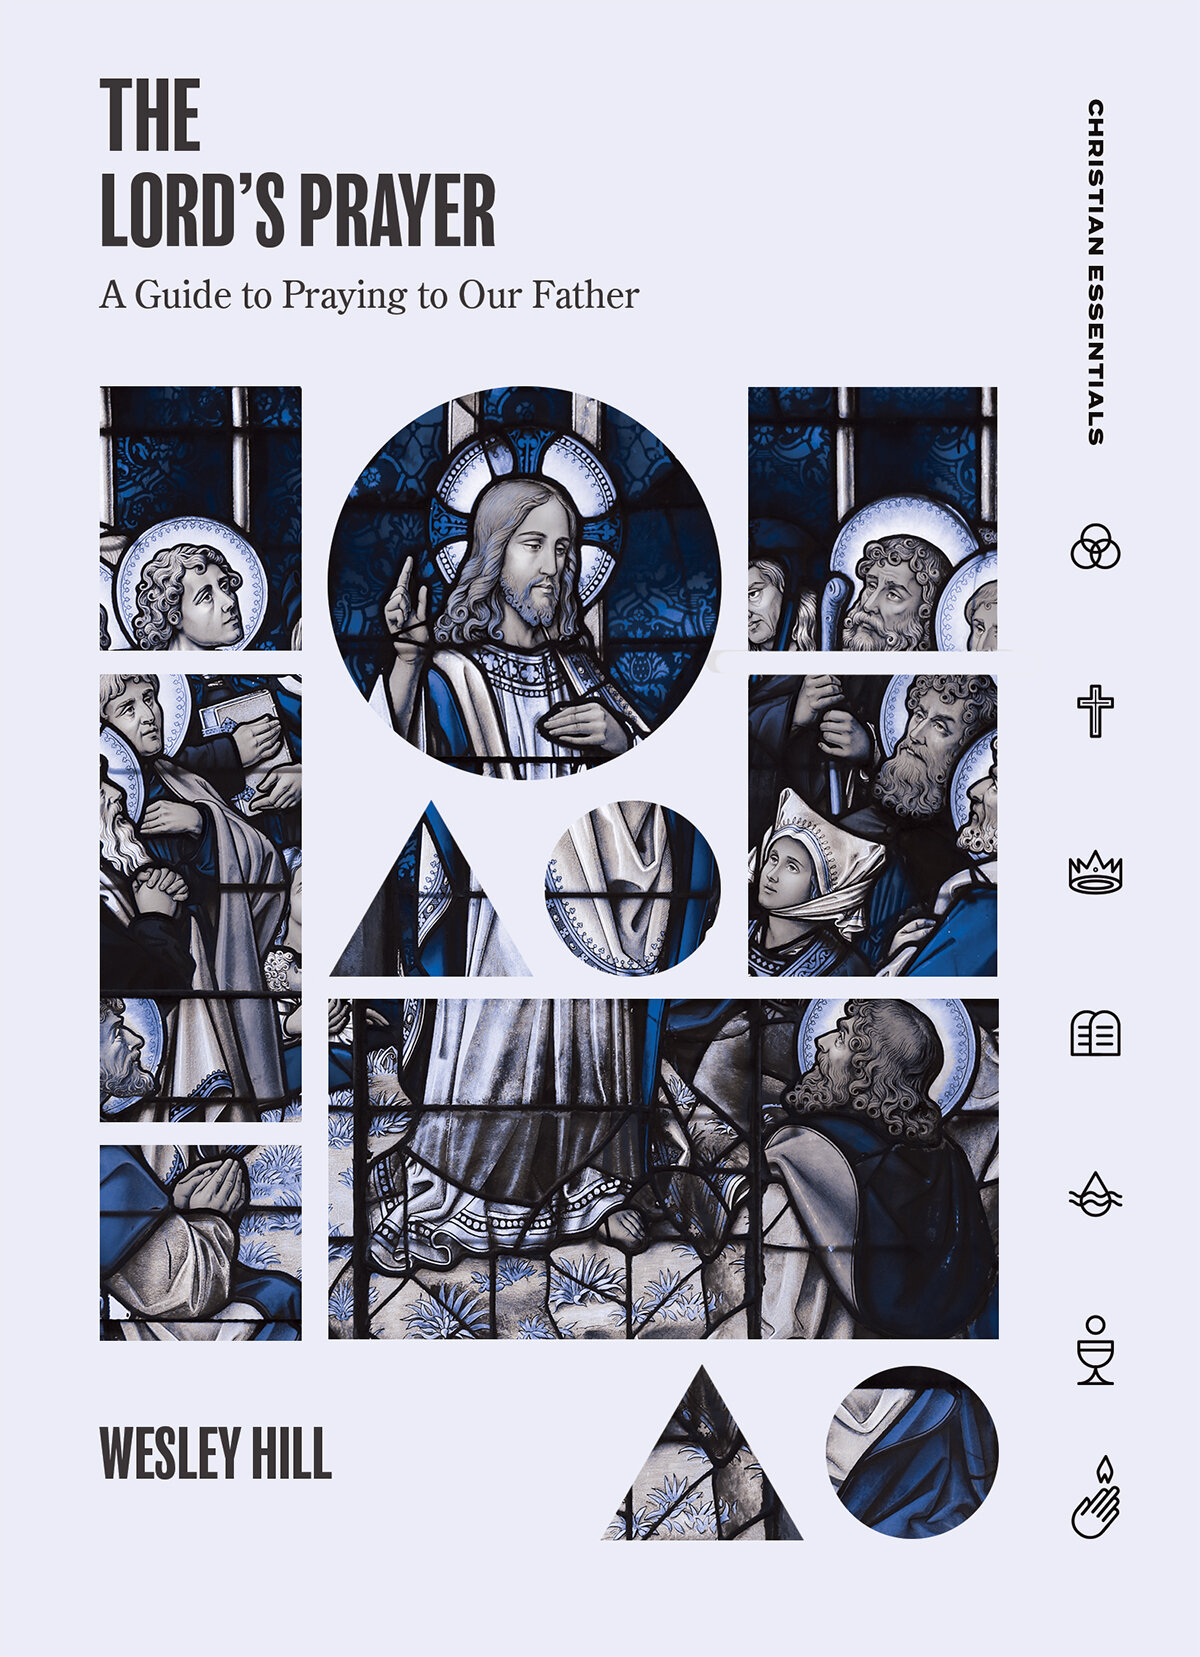 The Lord's Prayer: A Guide to Praying to Our Father